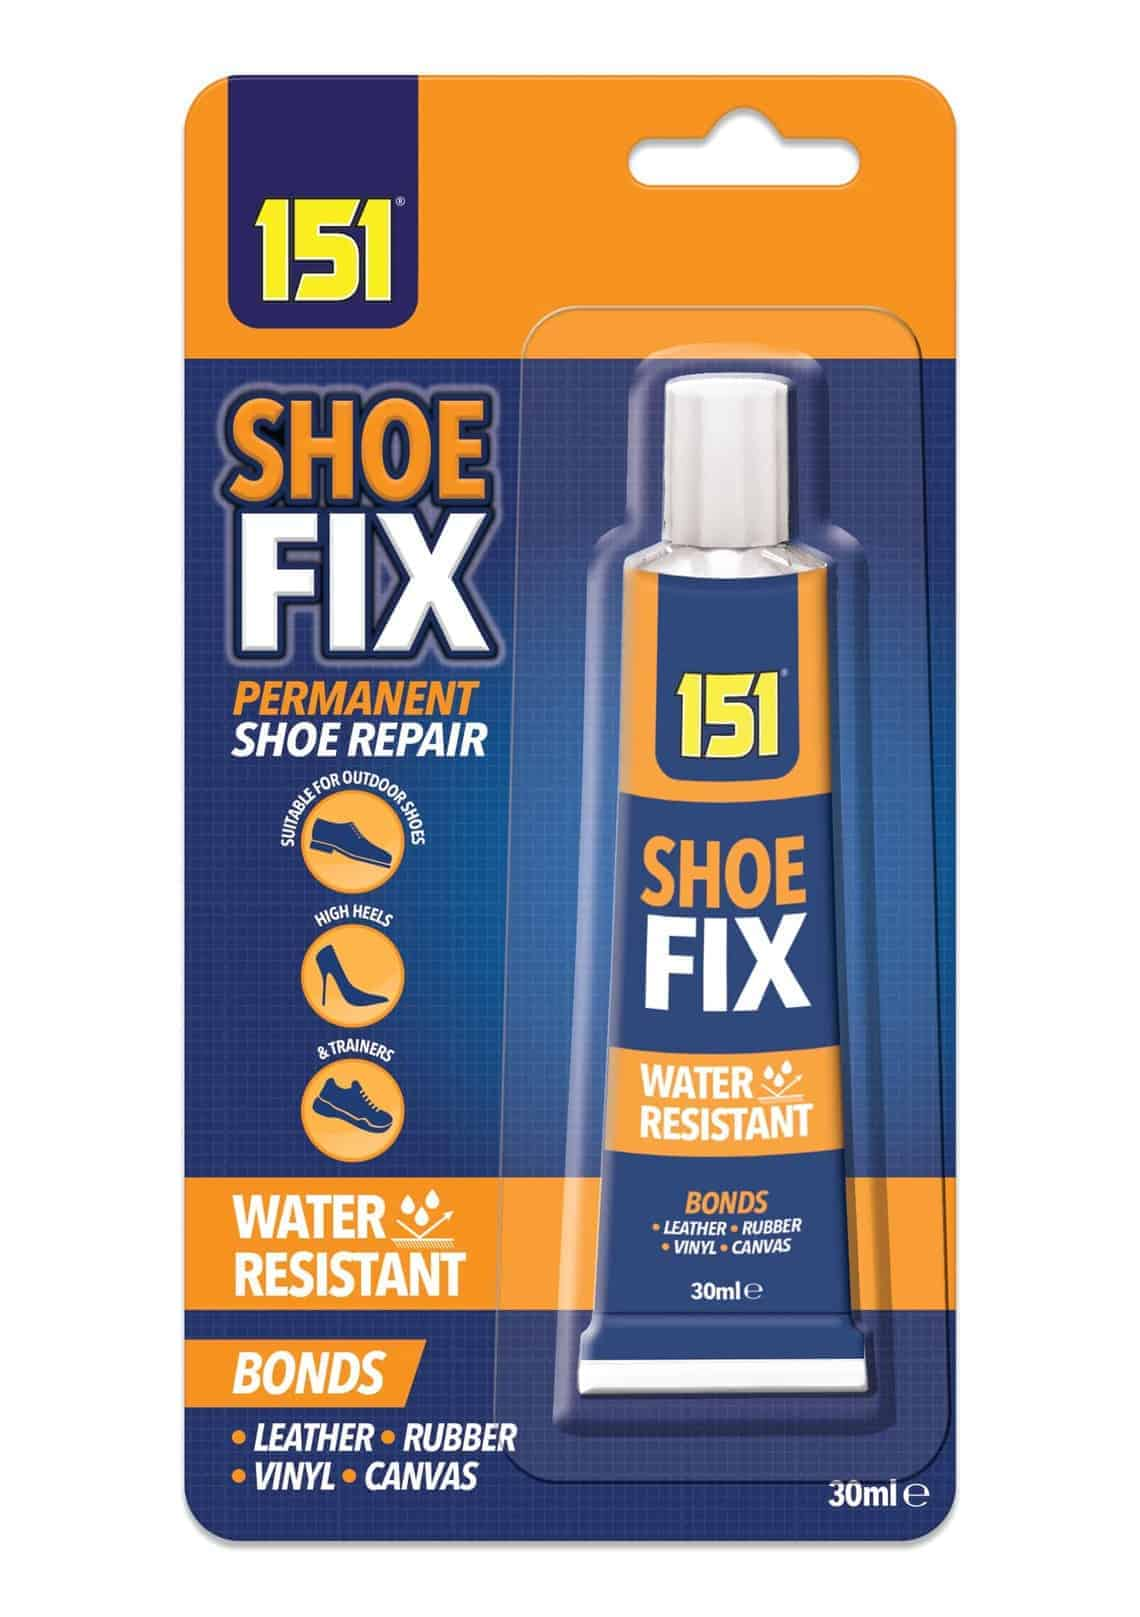 30G Shoe Fix Glue